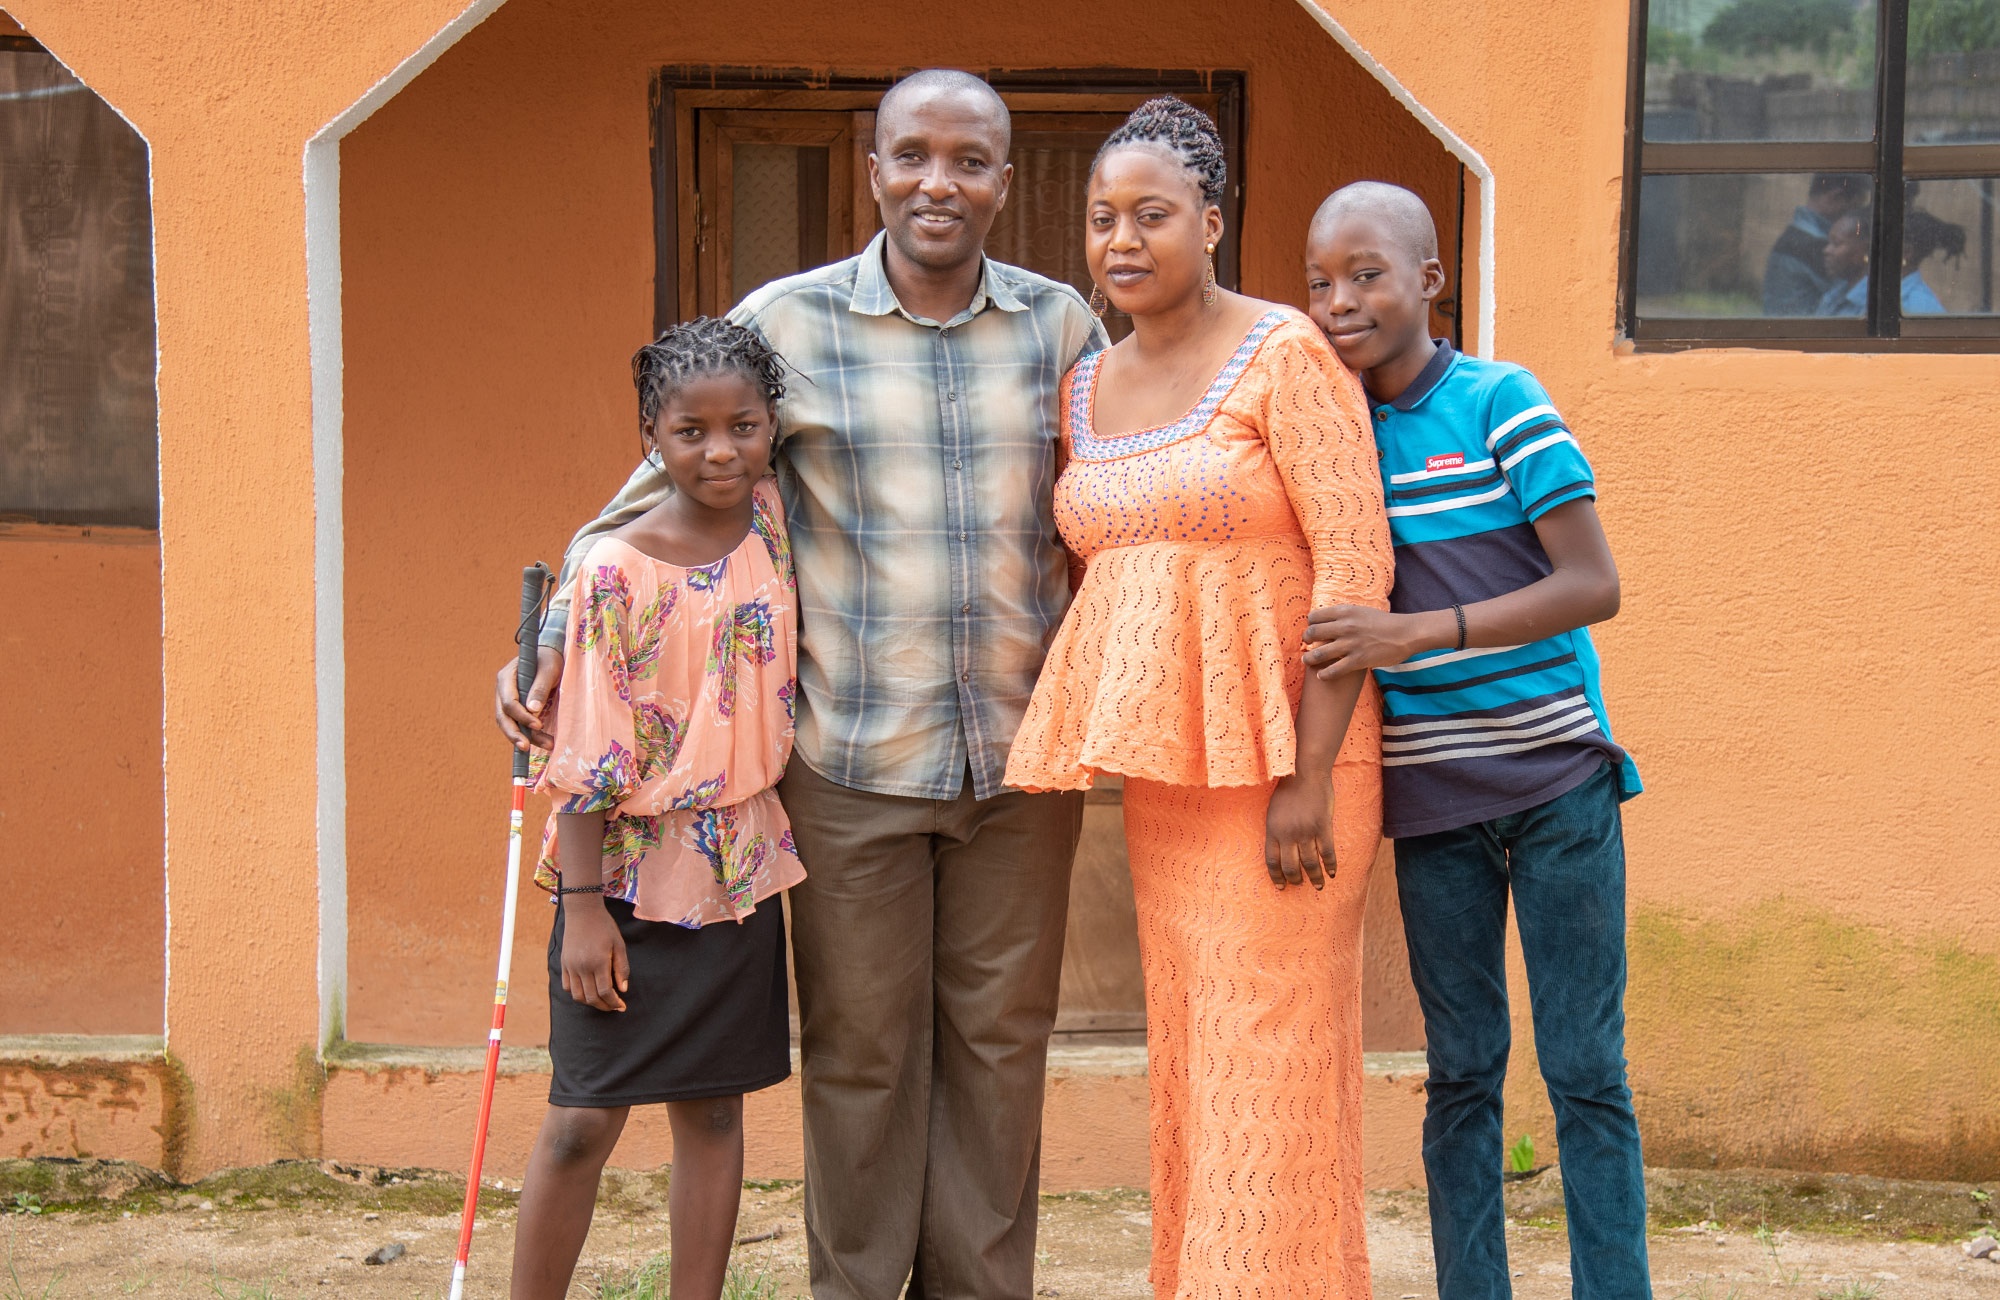 Nigerian Family standing in front of a peach colored building